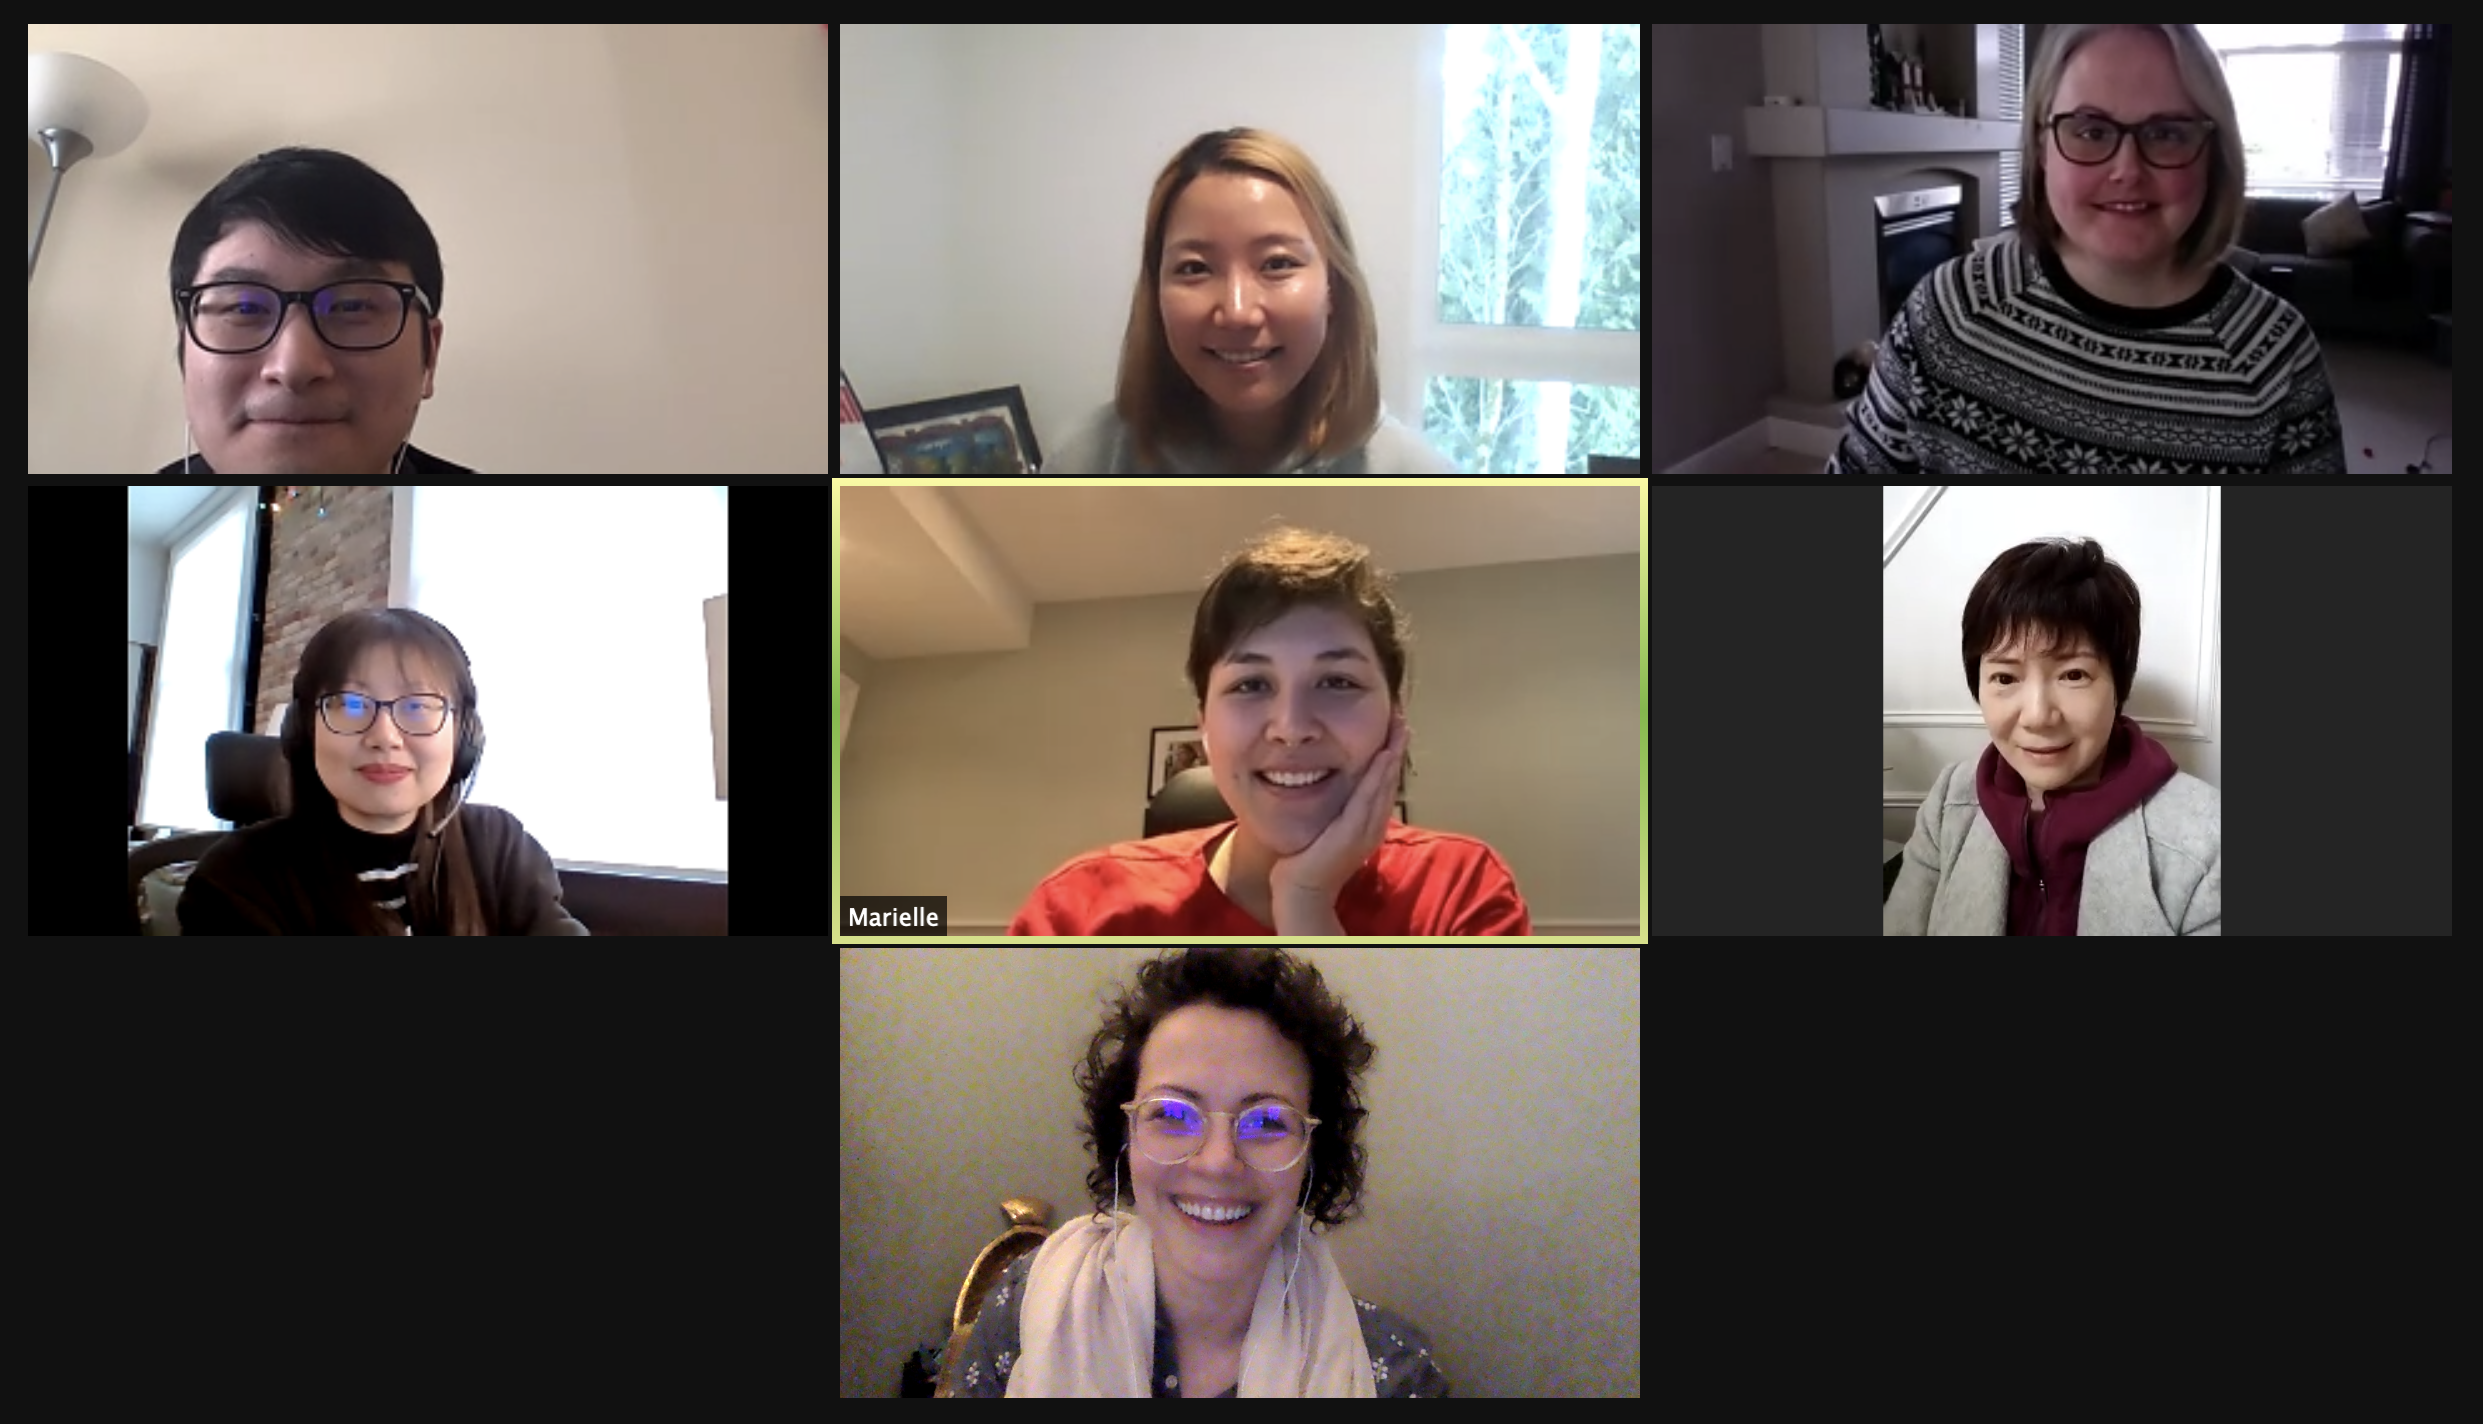 A group photo of the team on Zoom. Everyone is smiling and posing for the picture. The people from left to right are: Lucas, Grace, Stacey, Mingji, Marielle, Nicole, and  Alysha.